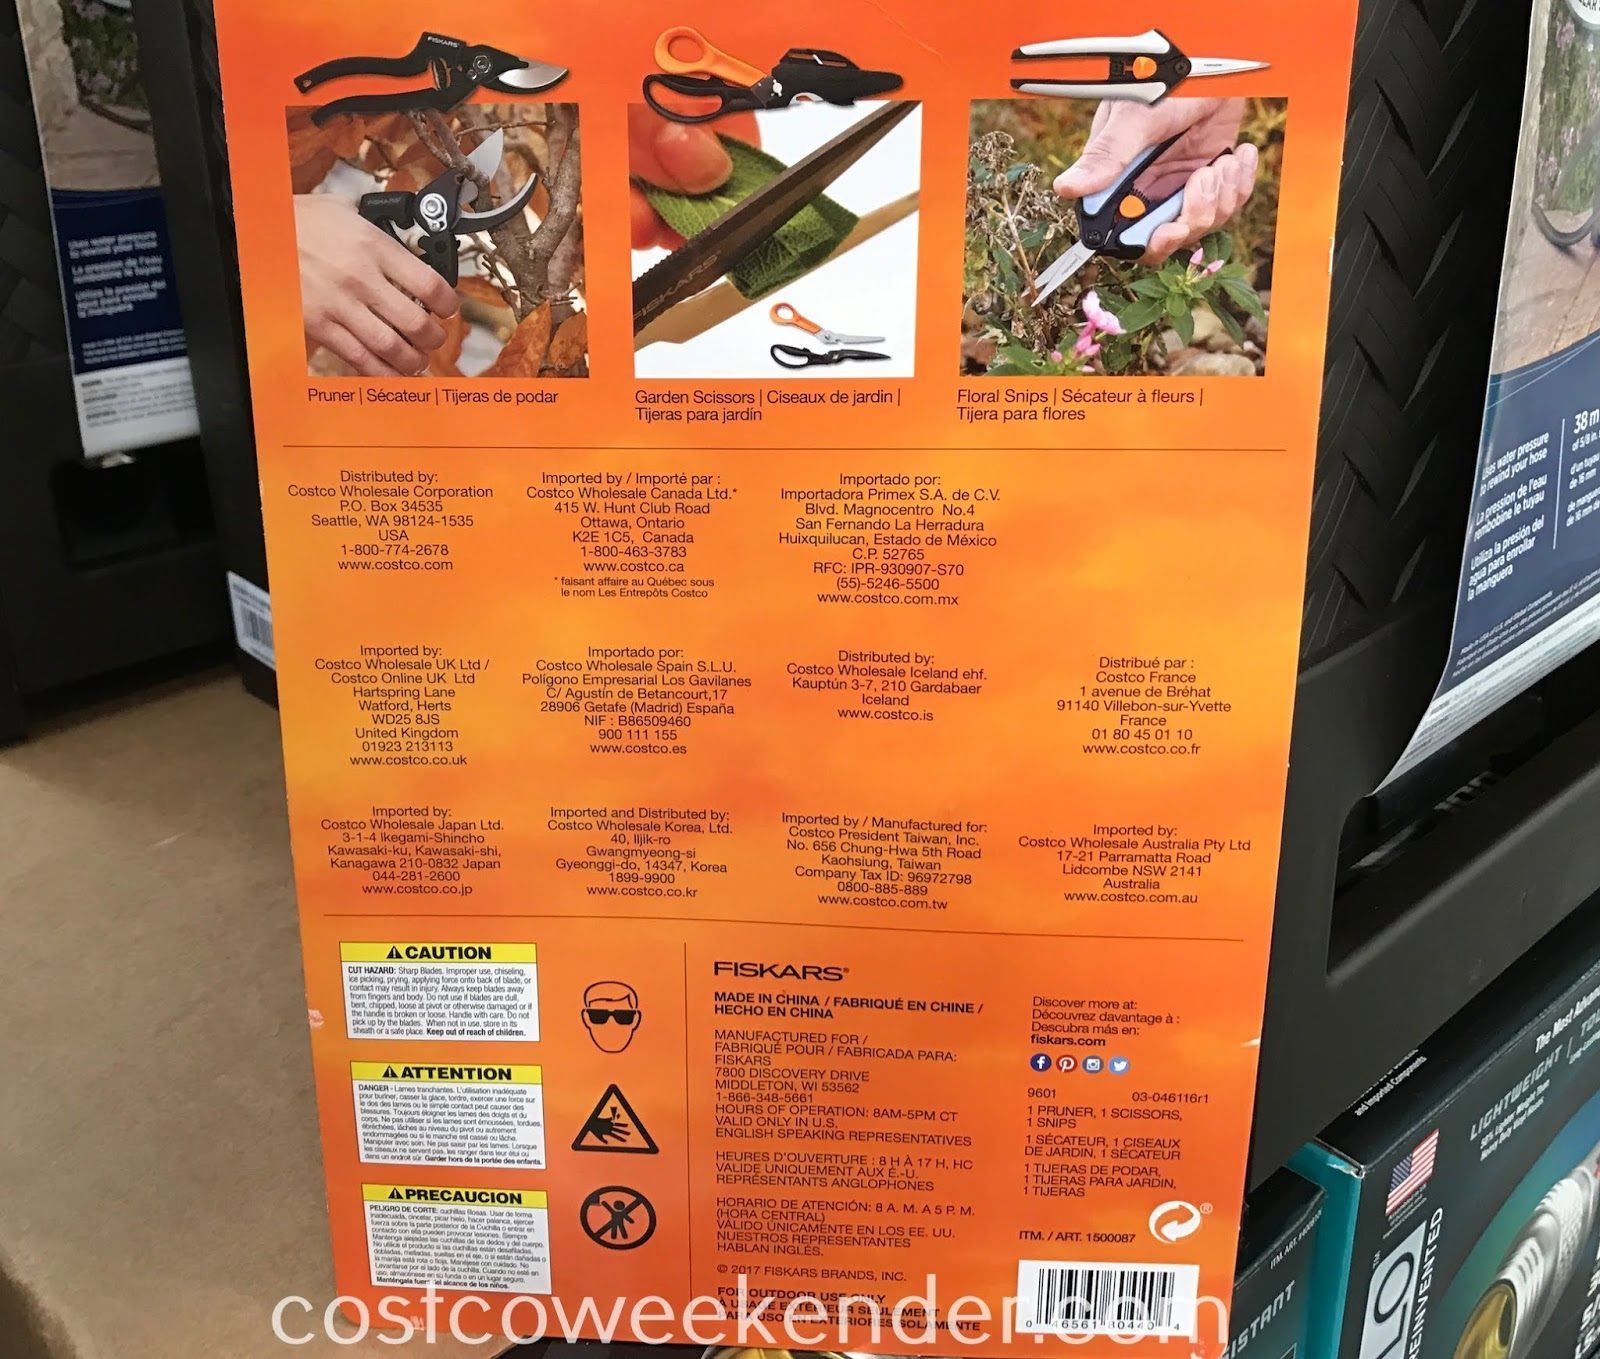 Costco 1500087 - Fiskars 3-piece Pruning Set: great for any home gardener